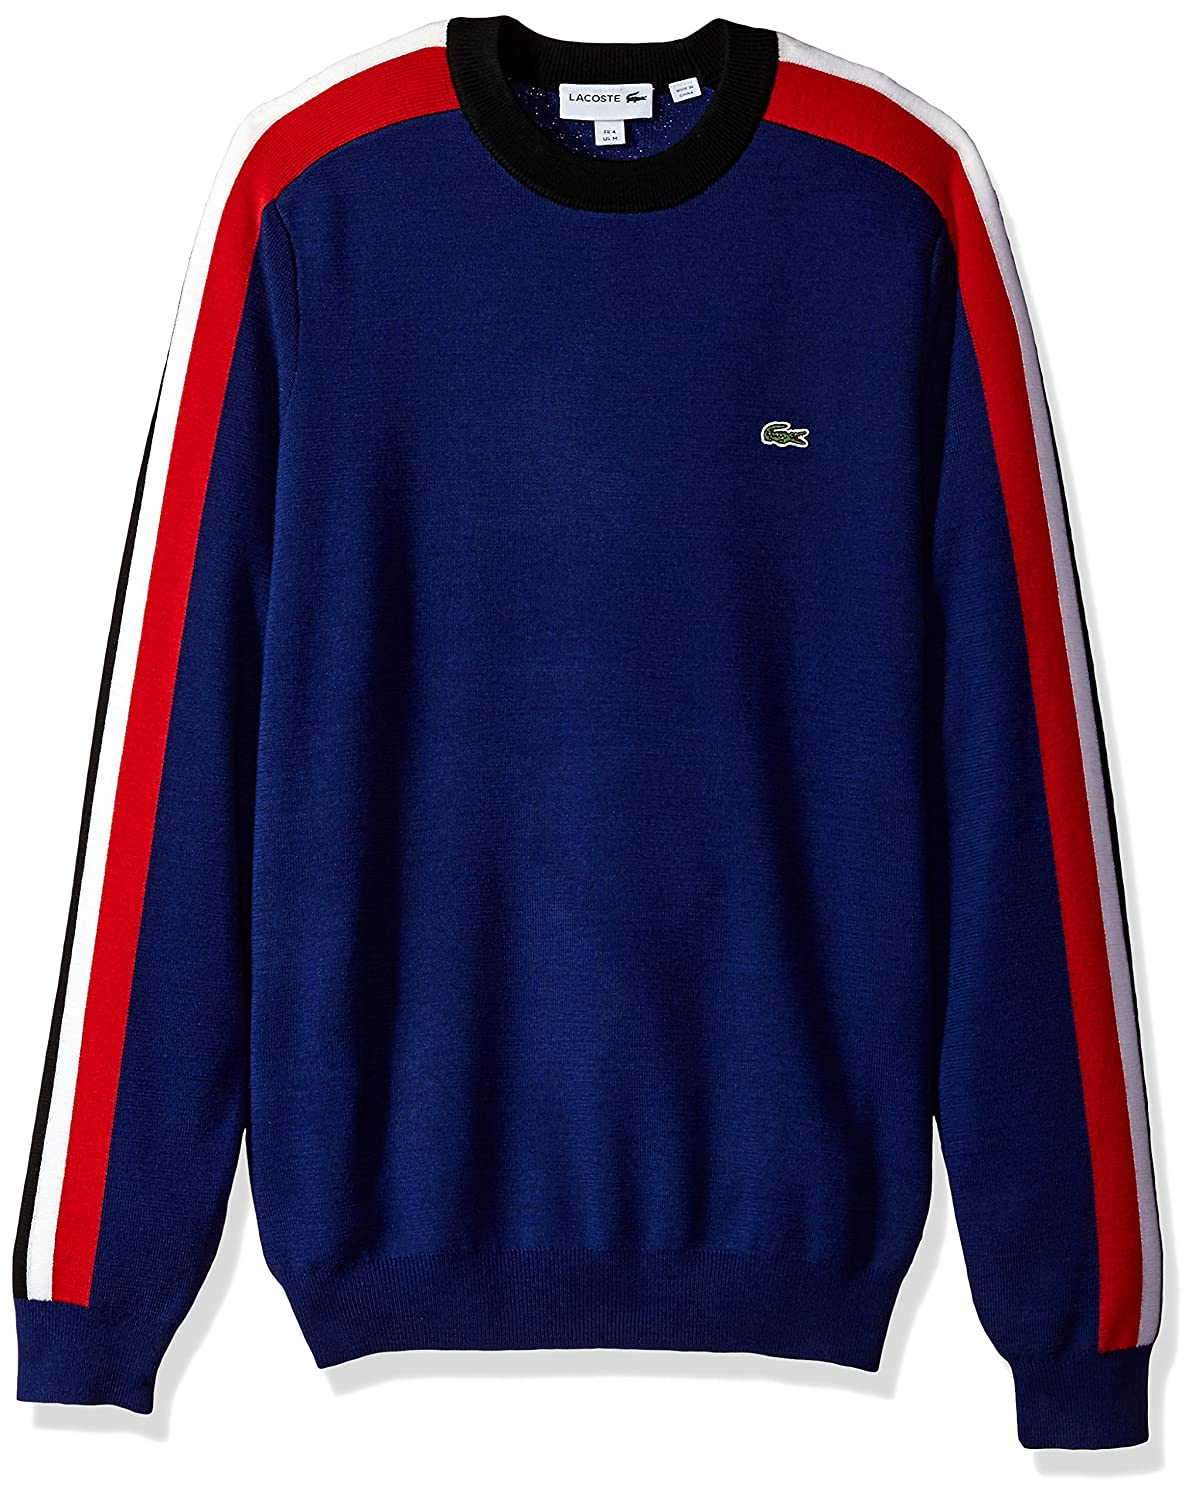 Lacoste Men's Mouline Jersey and Jacquard Wool Blend Sweater With Stripes